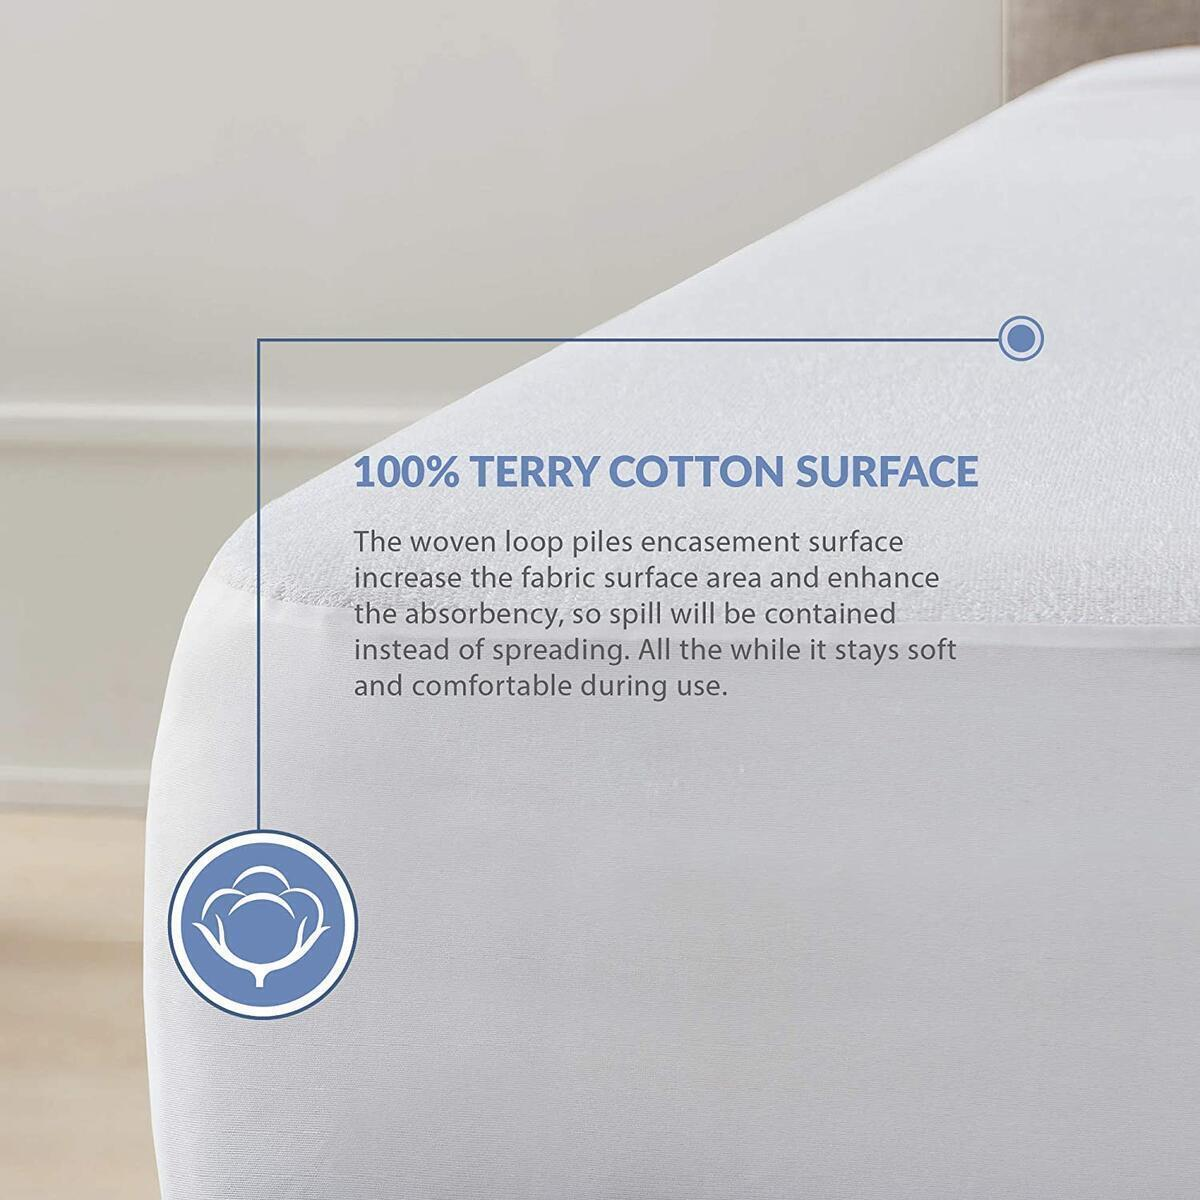 Hypoallergenic King Size Waterproof Mattress Protector | Deep Pocket, Breathable | Premium Fitted Cotton Terry Cover with 3M Scotchgard Stain Release | Urine and Spill Protection